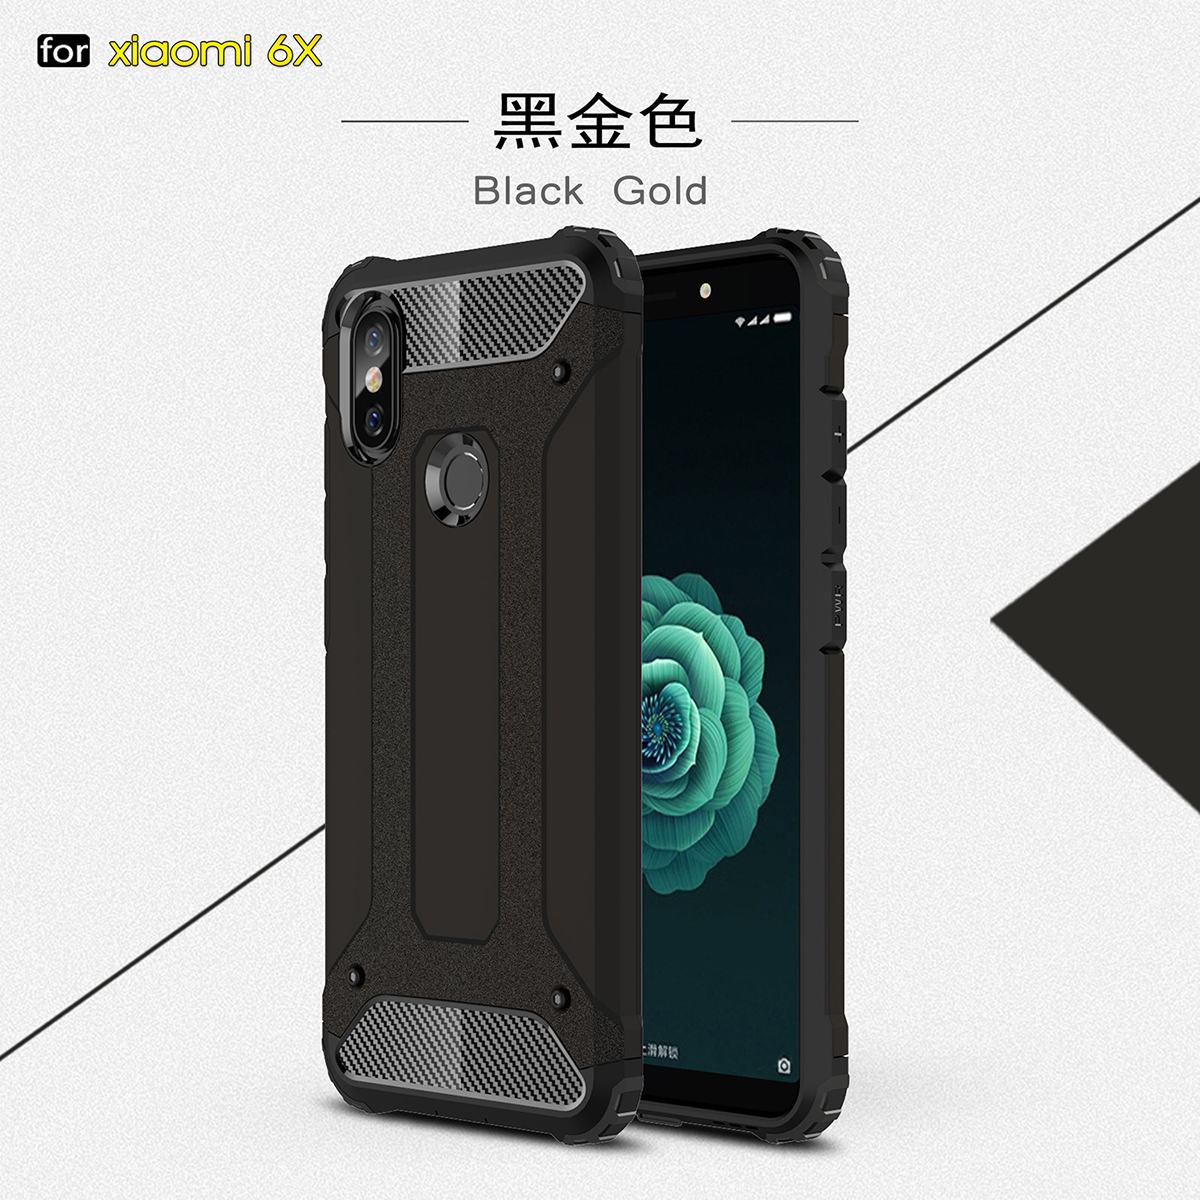 Protective Hybrid Shockproof Armor Hard Cover For Xiaomi Mi 6X/A2 Silicone Case